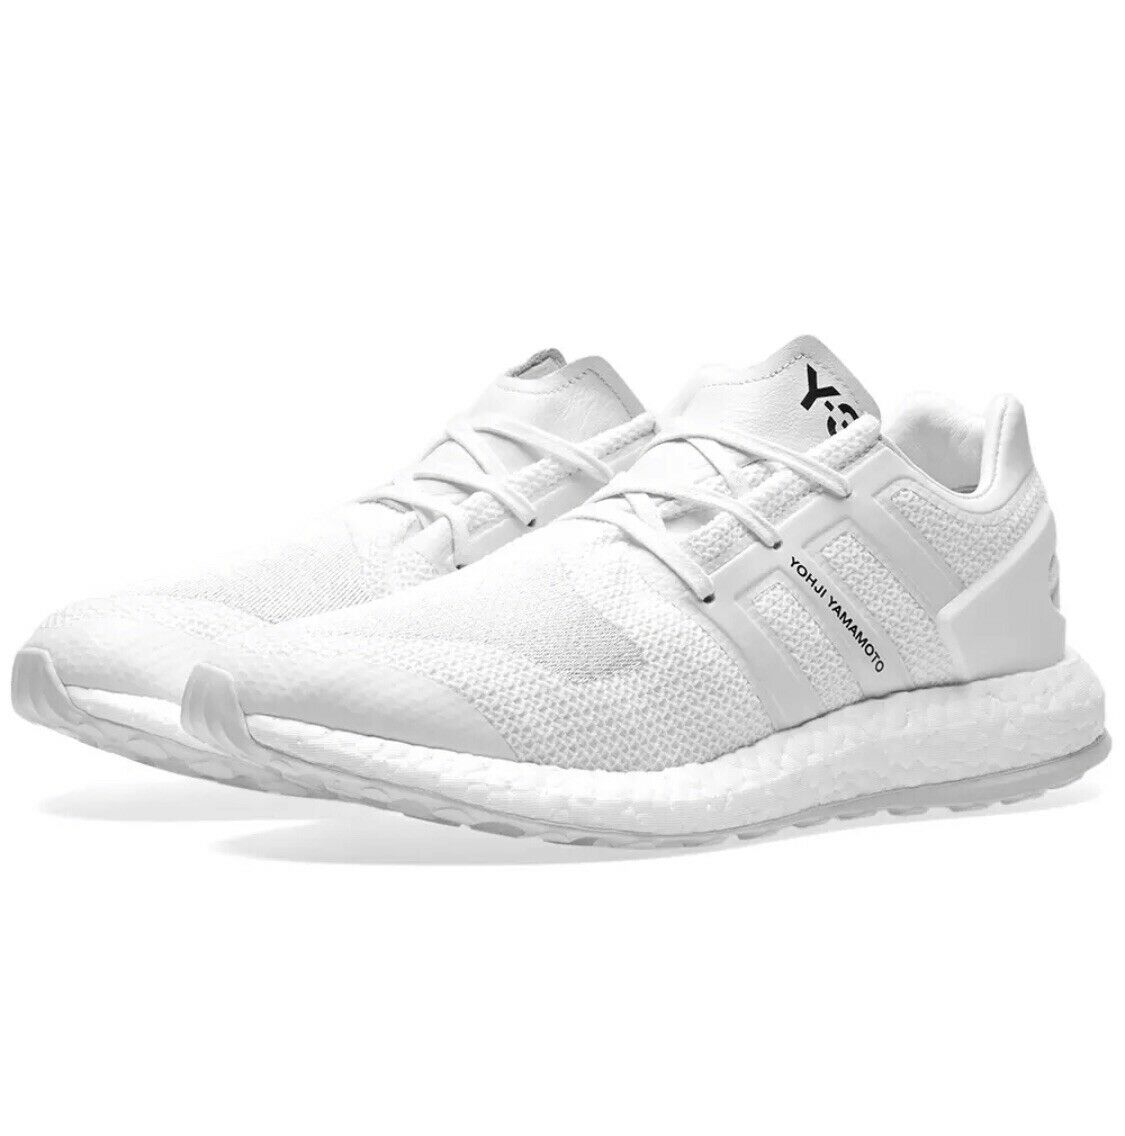 Y-3 PURE BOOST WHITE & CRYSTAL WHITE UK7